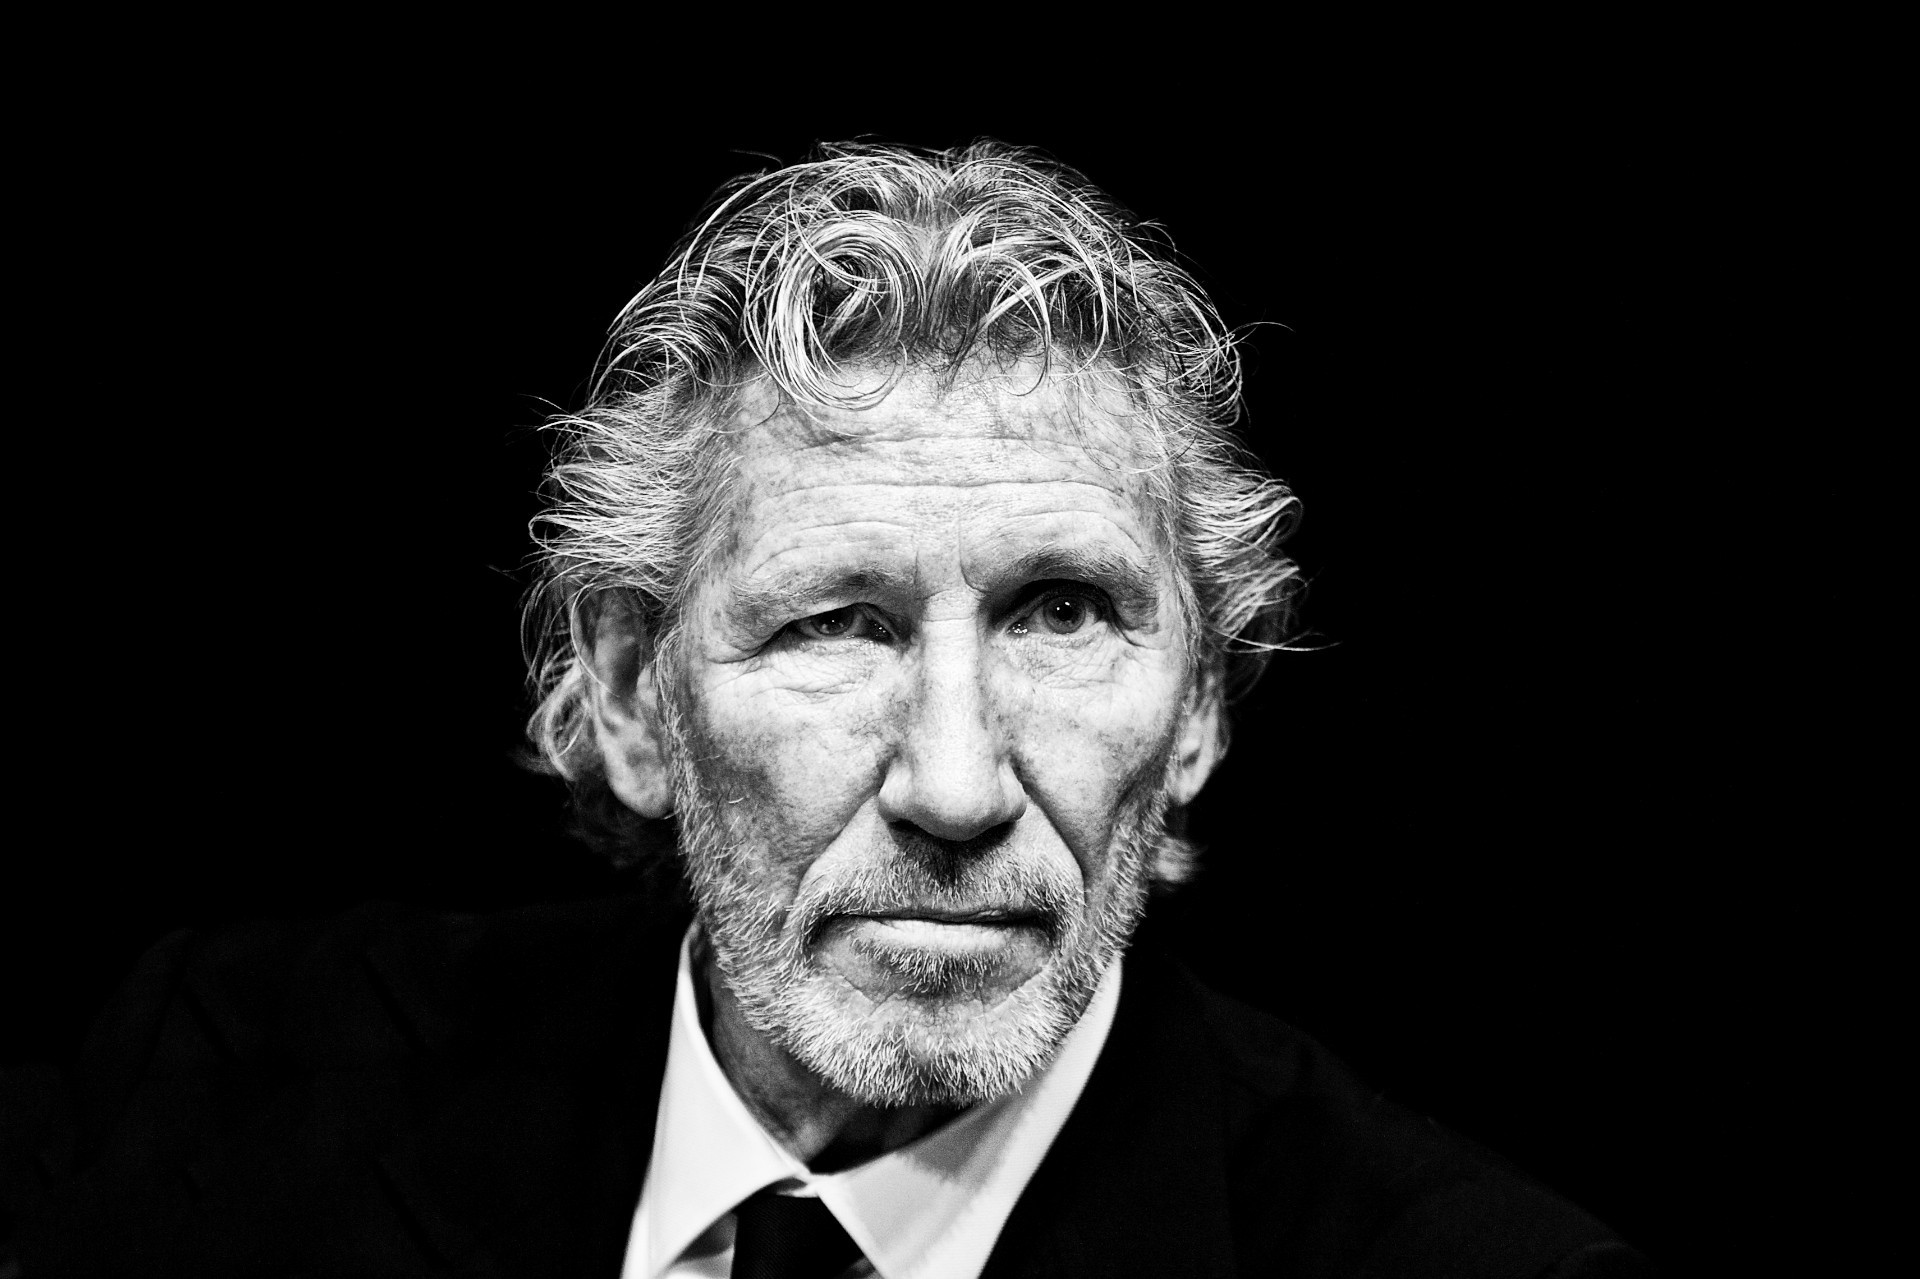 Roger Waters portrait